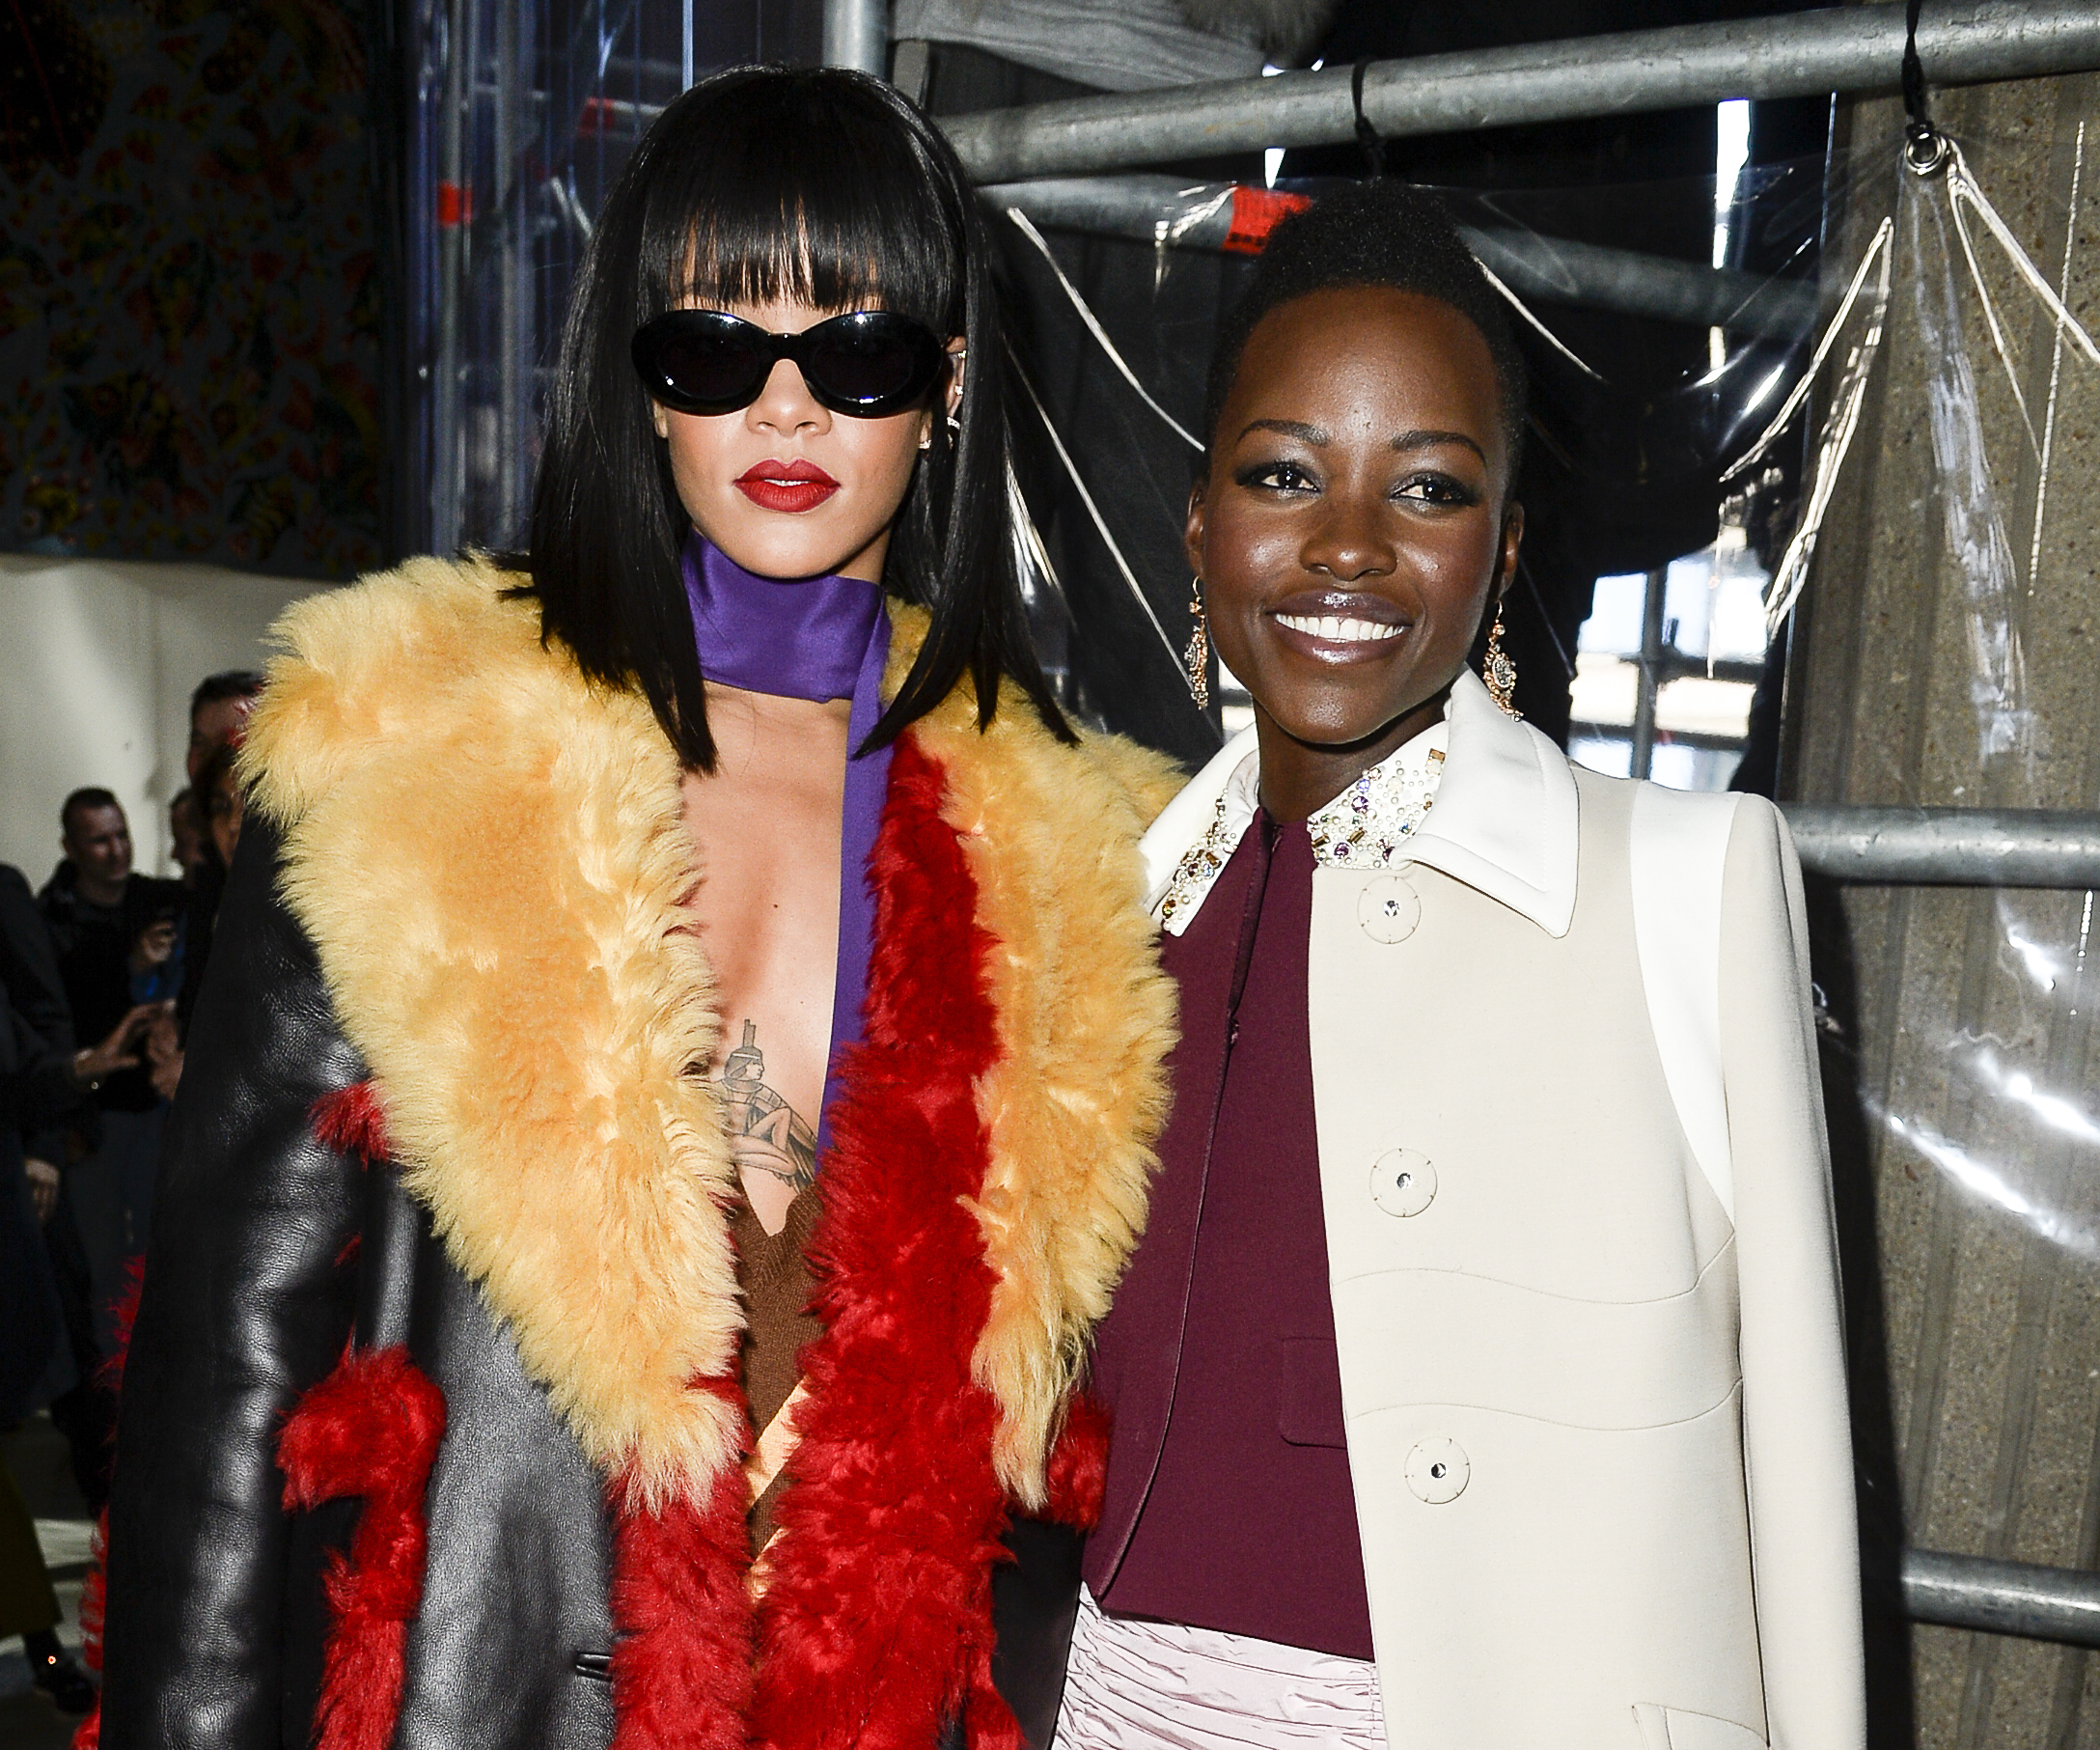 Rihanna, Lupita Nyong'o to star in Ava DuVernay-directed movie